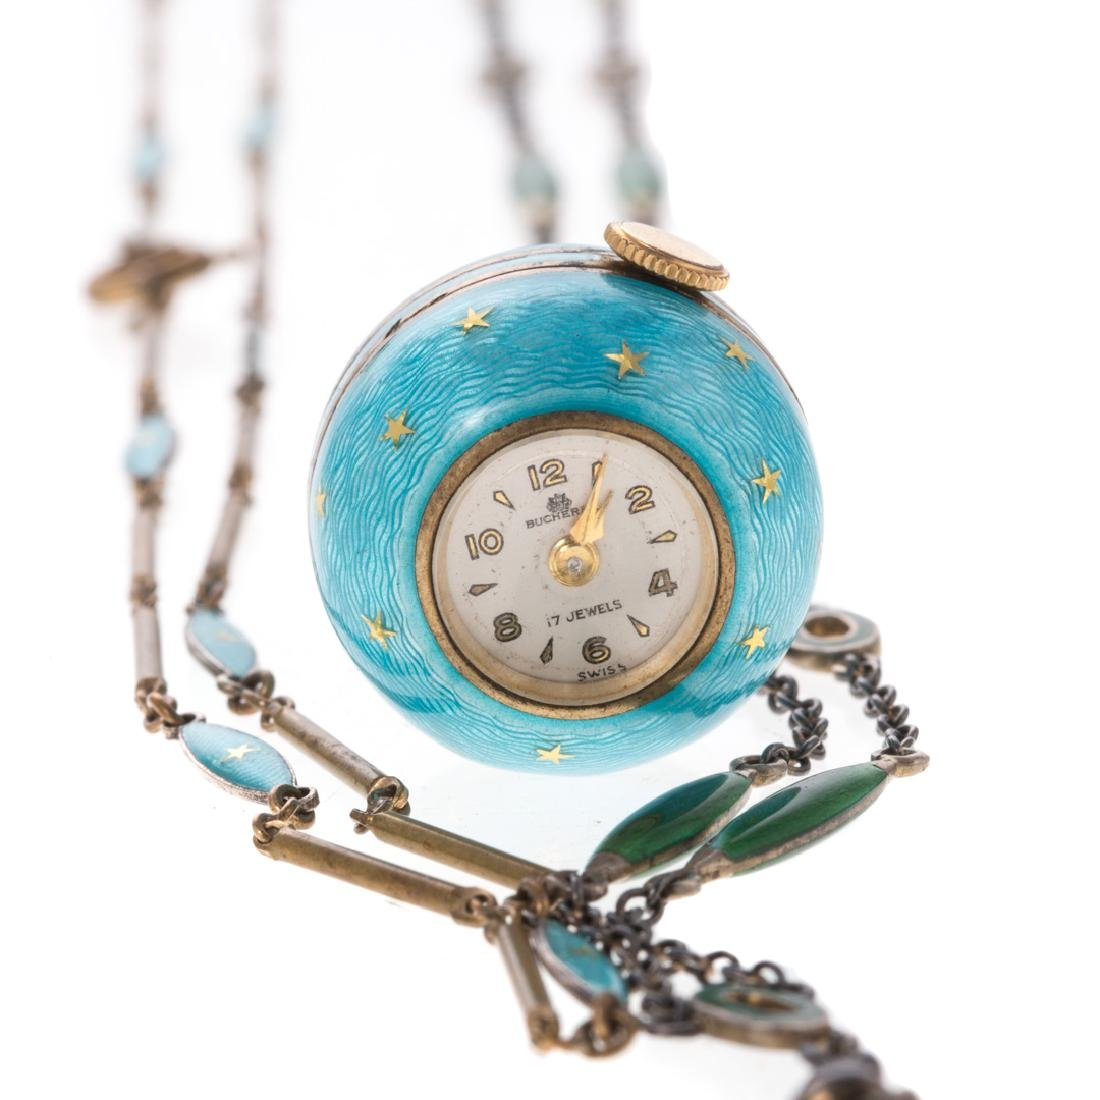 A Lady's Bucherer Ball Watch with Matching Chains - 5